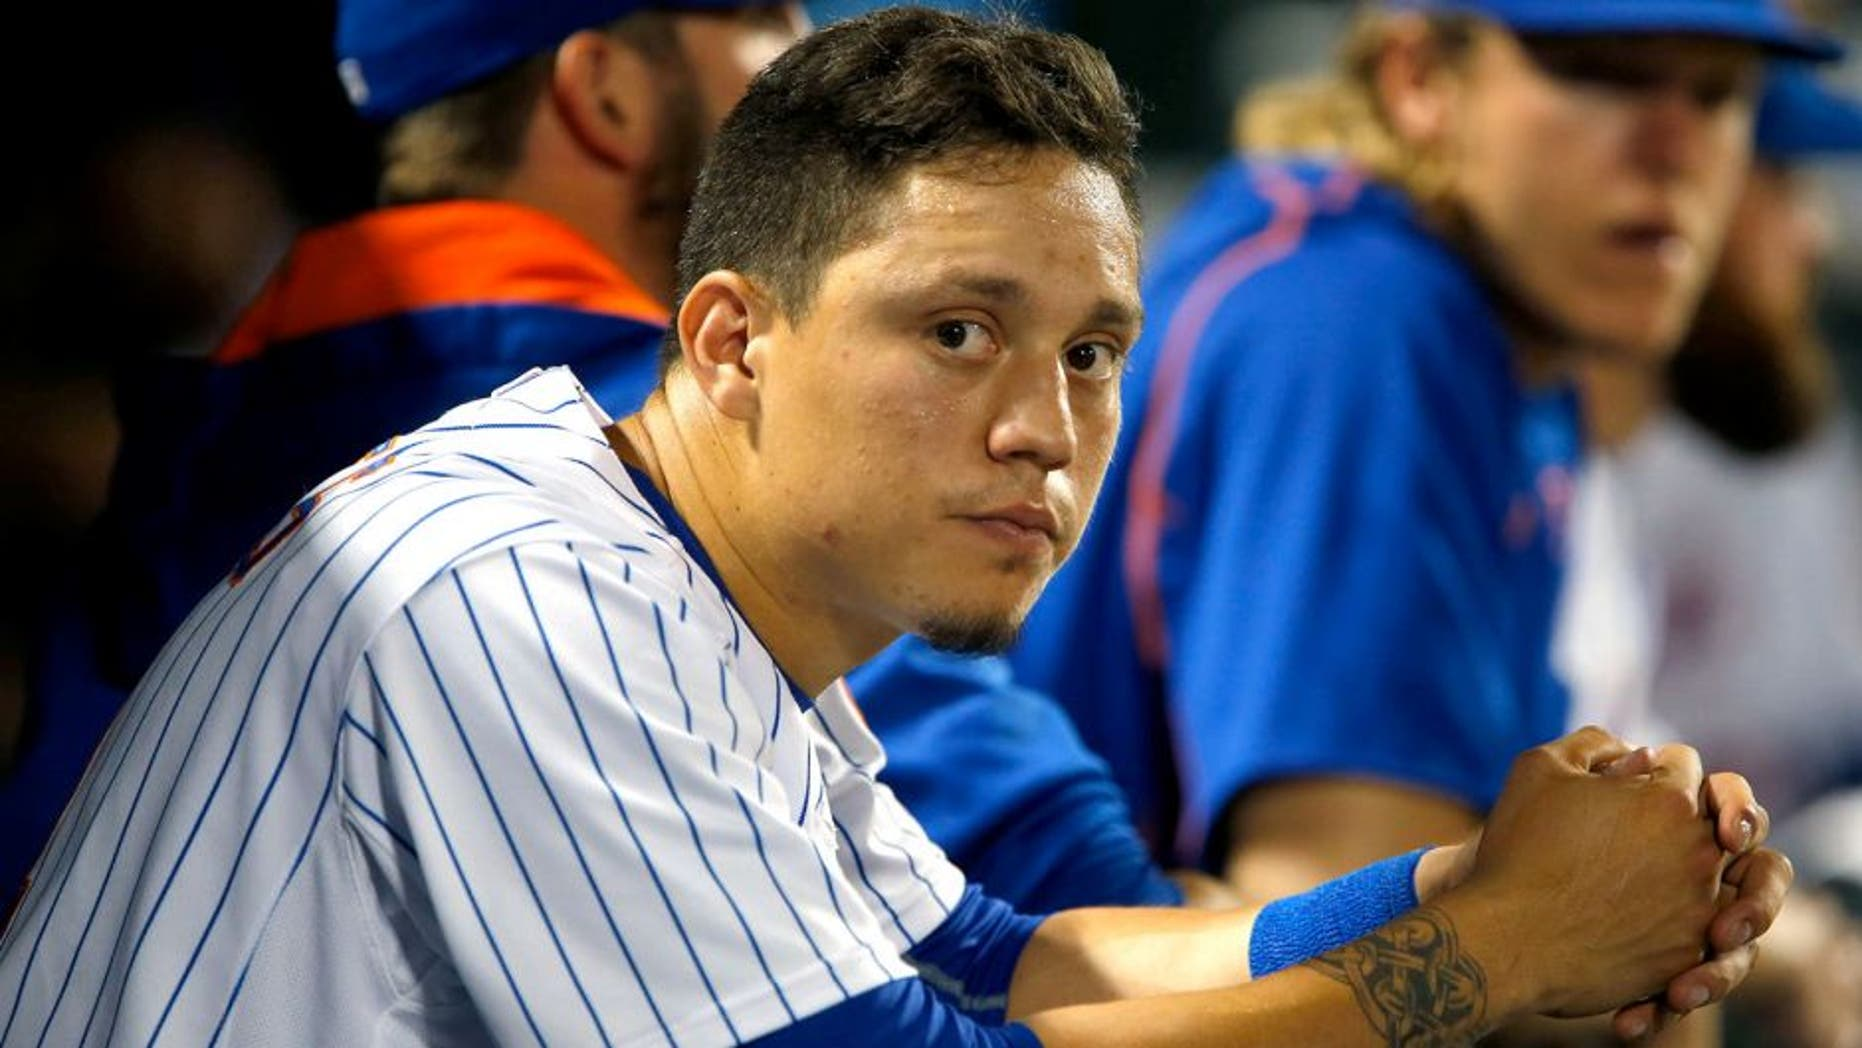 Jul 29, 2015; New York City, NY, USA; New York Mets shortstop Wilmer Flores (4) dejected in the dugout during game against the San Diego Padres at Citi Field. Mandatory Credit: Noah K. Murray-USA TODAY Sports